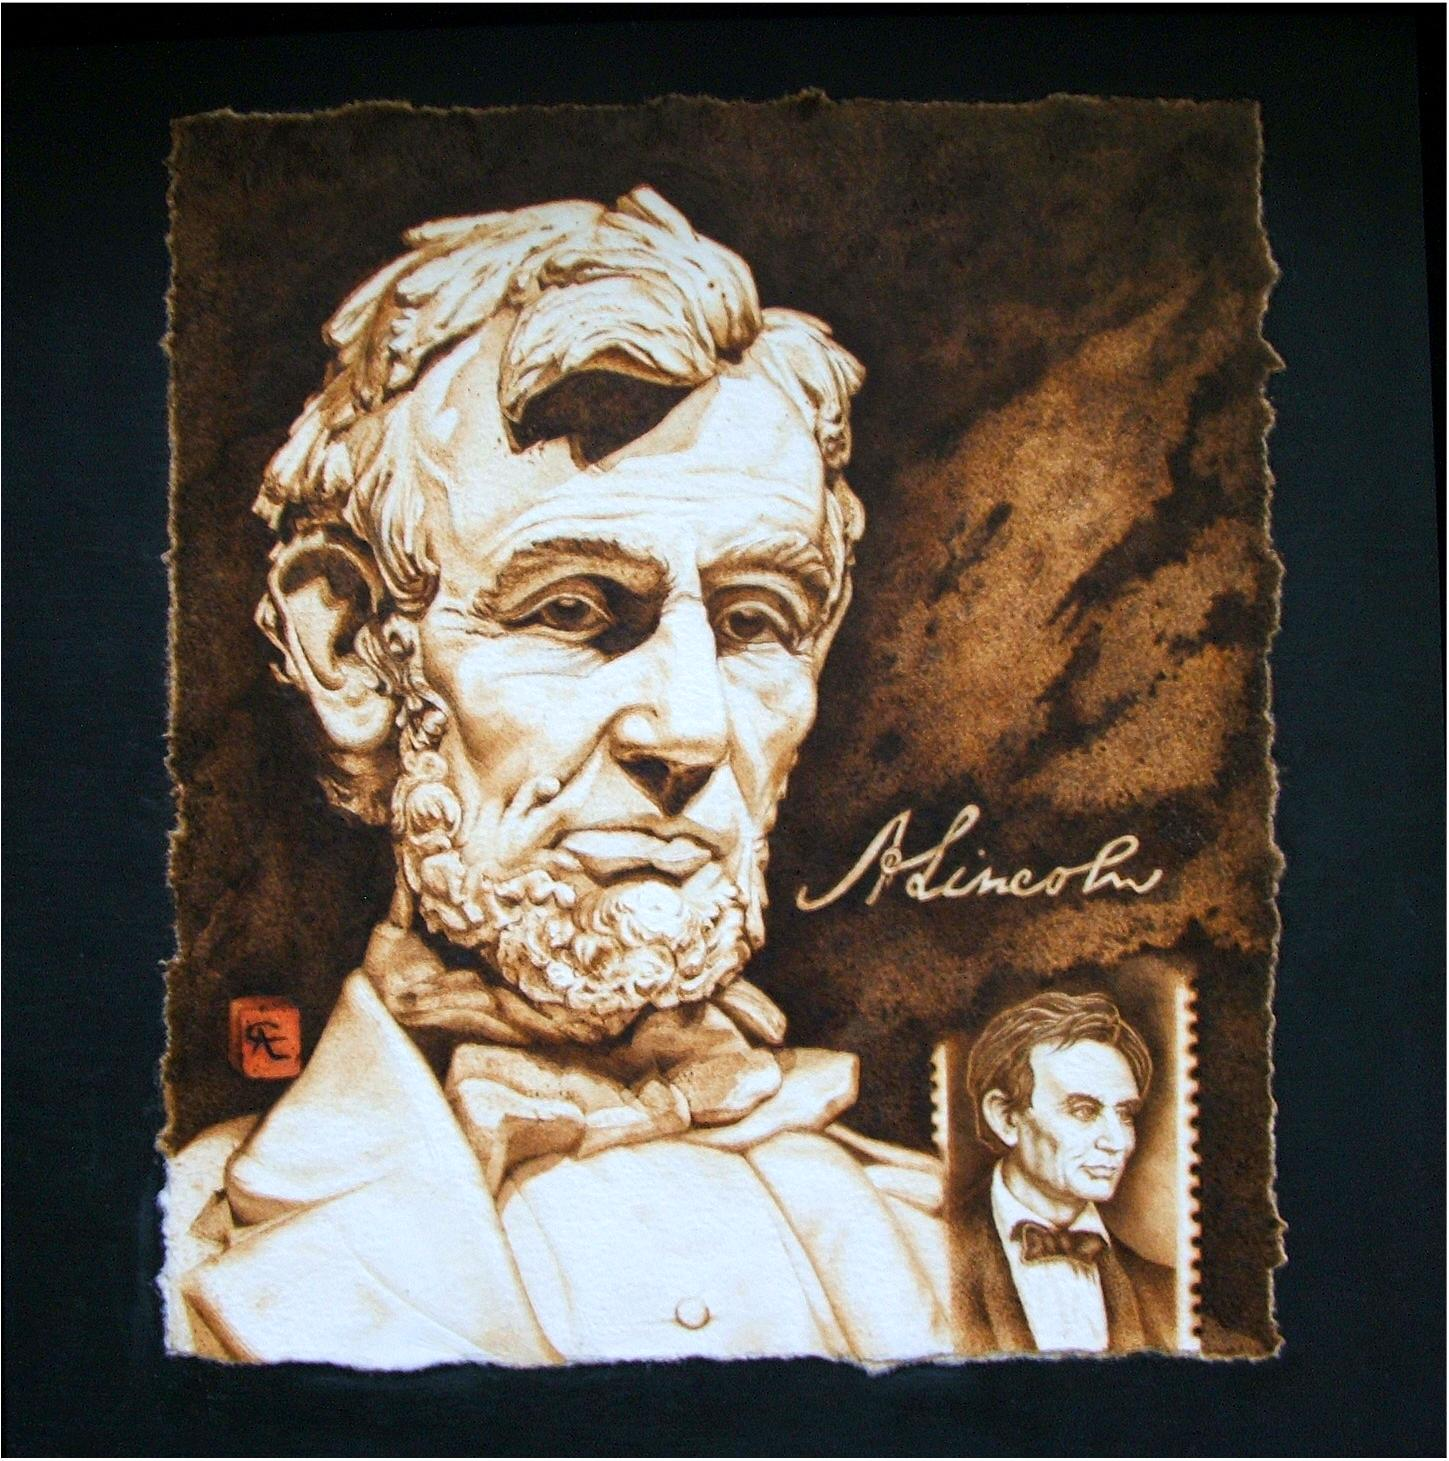 Pyrographic creations of Abraham Lincoln and the Lincoln Memorial